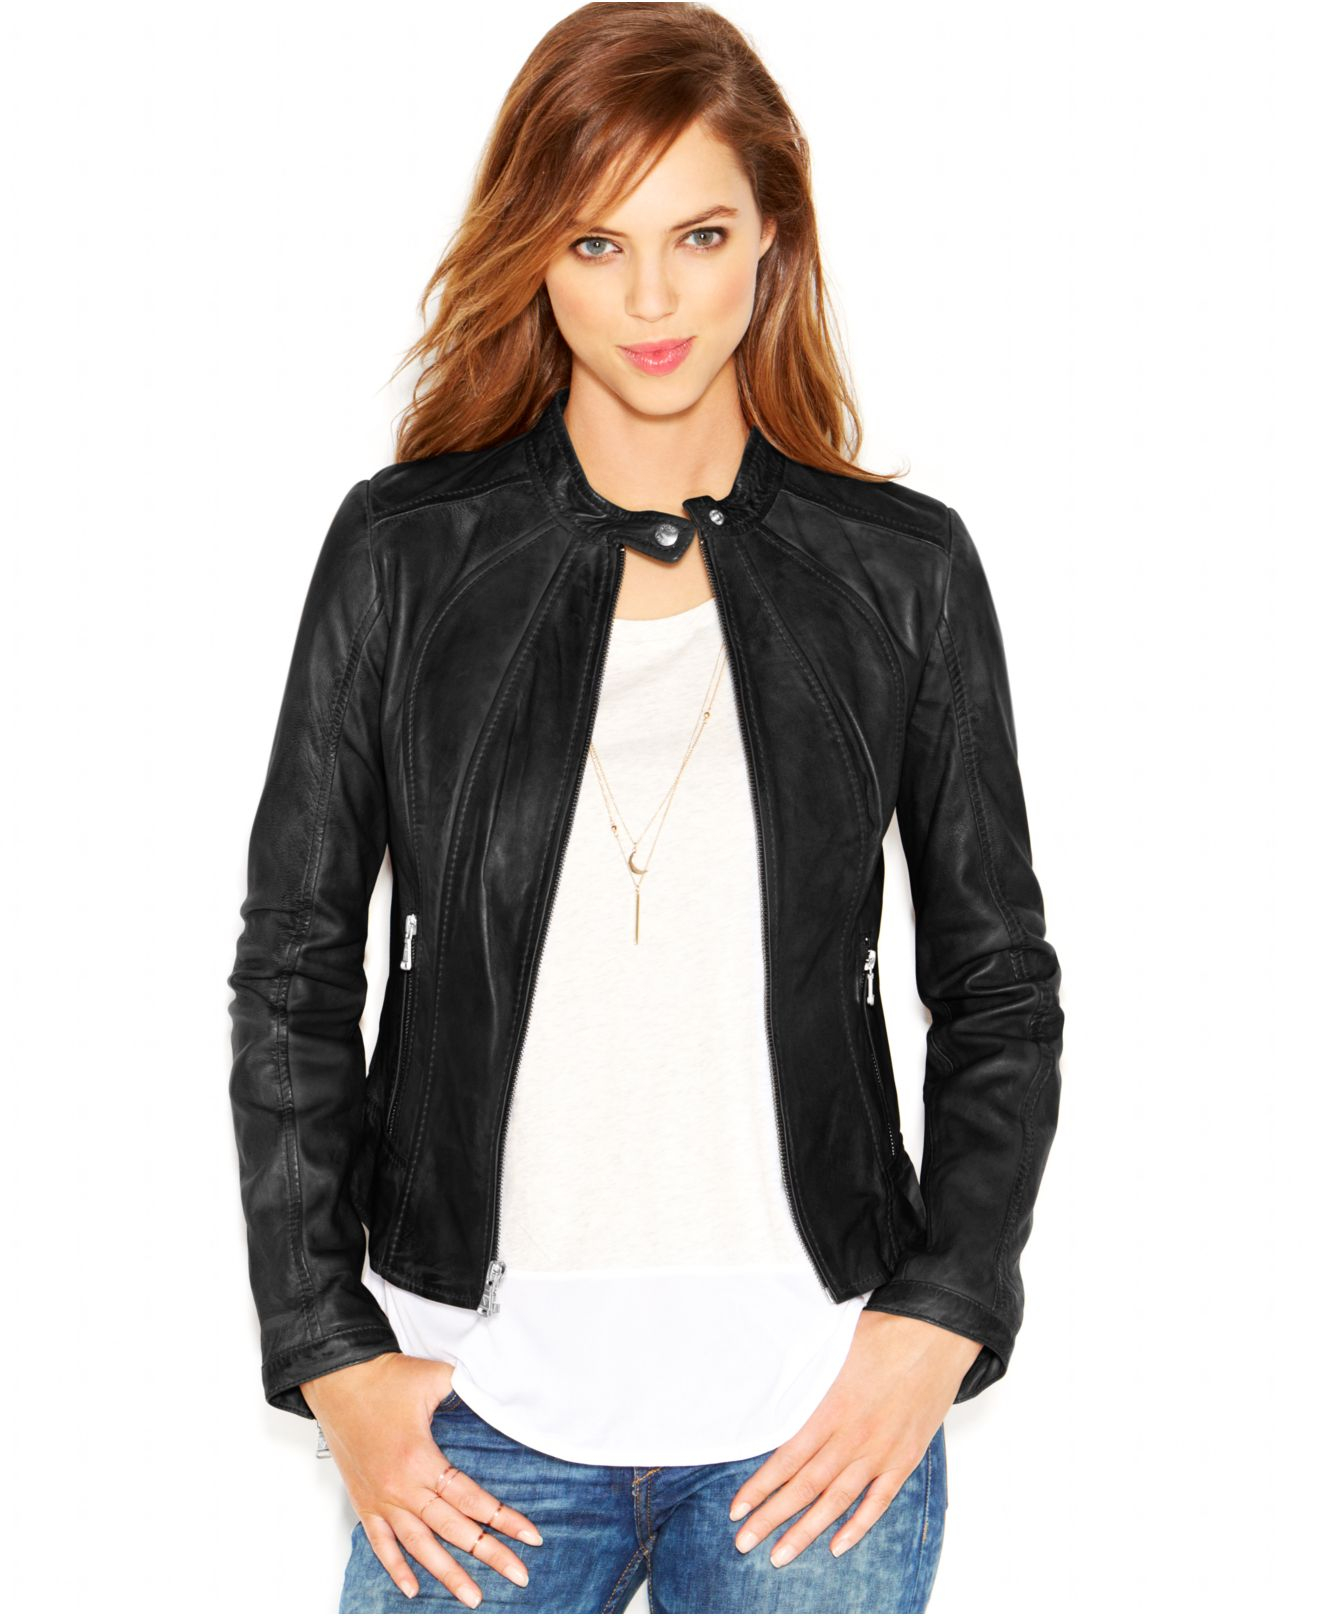 1db9eb6b7caee Gallery. Previously sold at  Macy s · Women s Collarless Leather Jackets ...